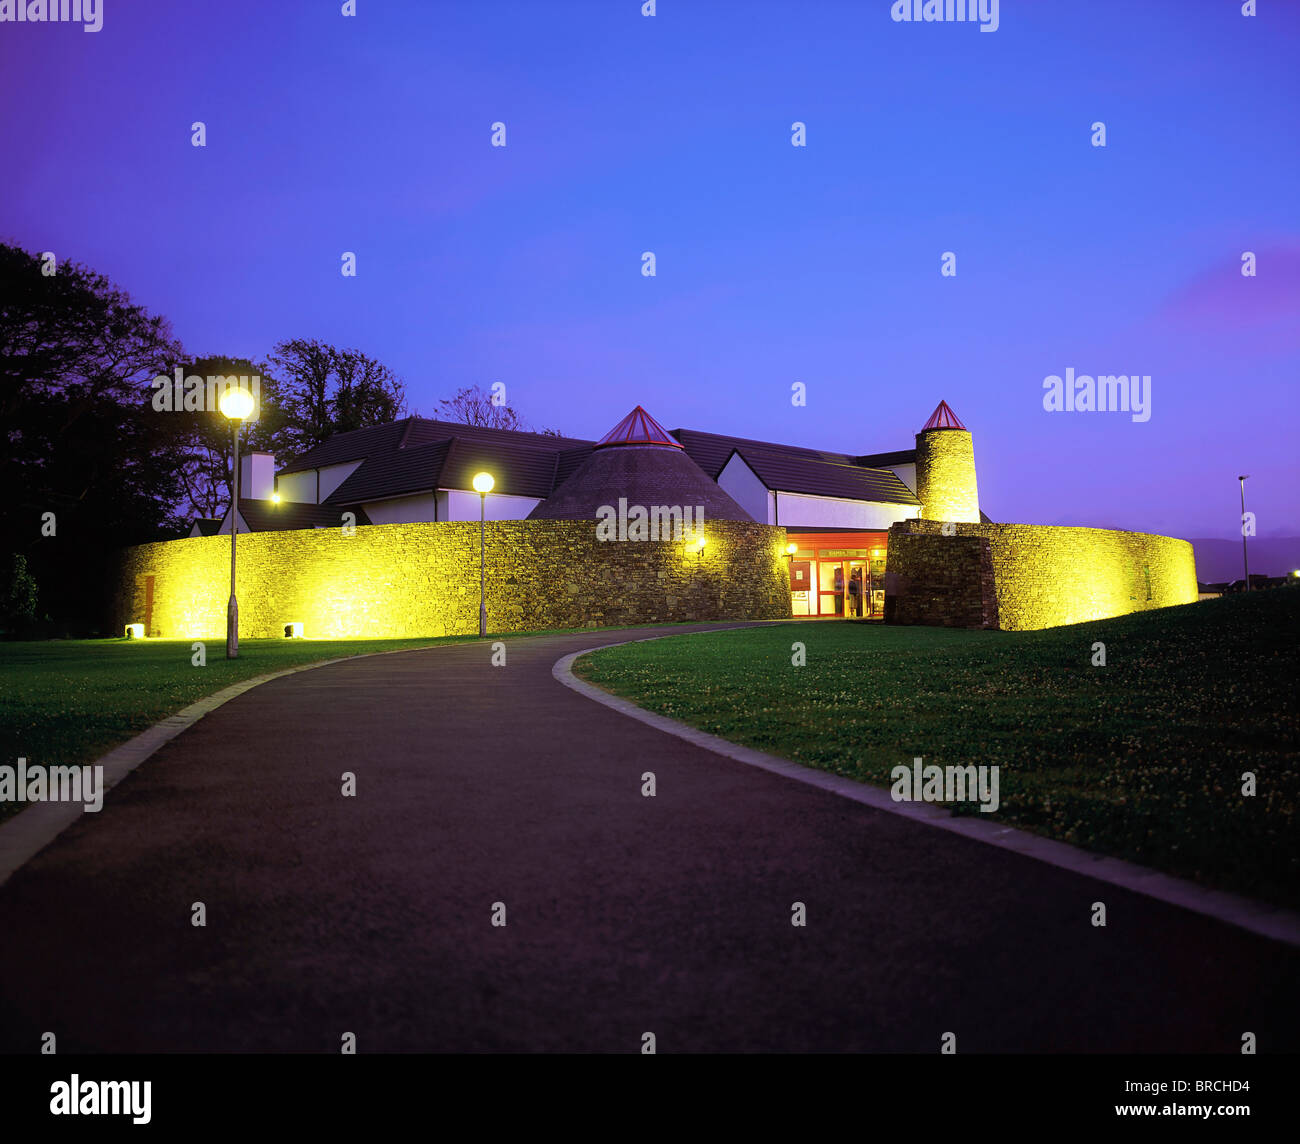 Siamsa Tire, The National Folk Theatre & Arts Centre, Tralee, Co Kerry, Ireland - Stock Image